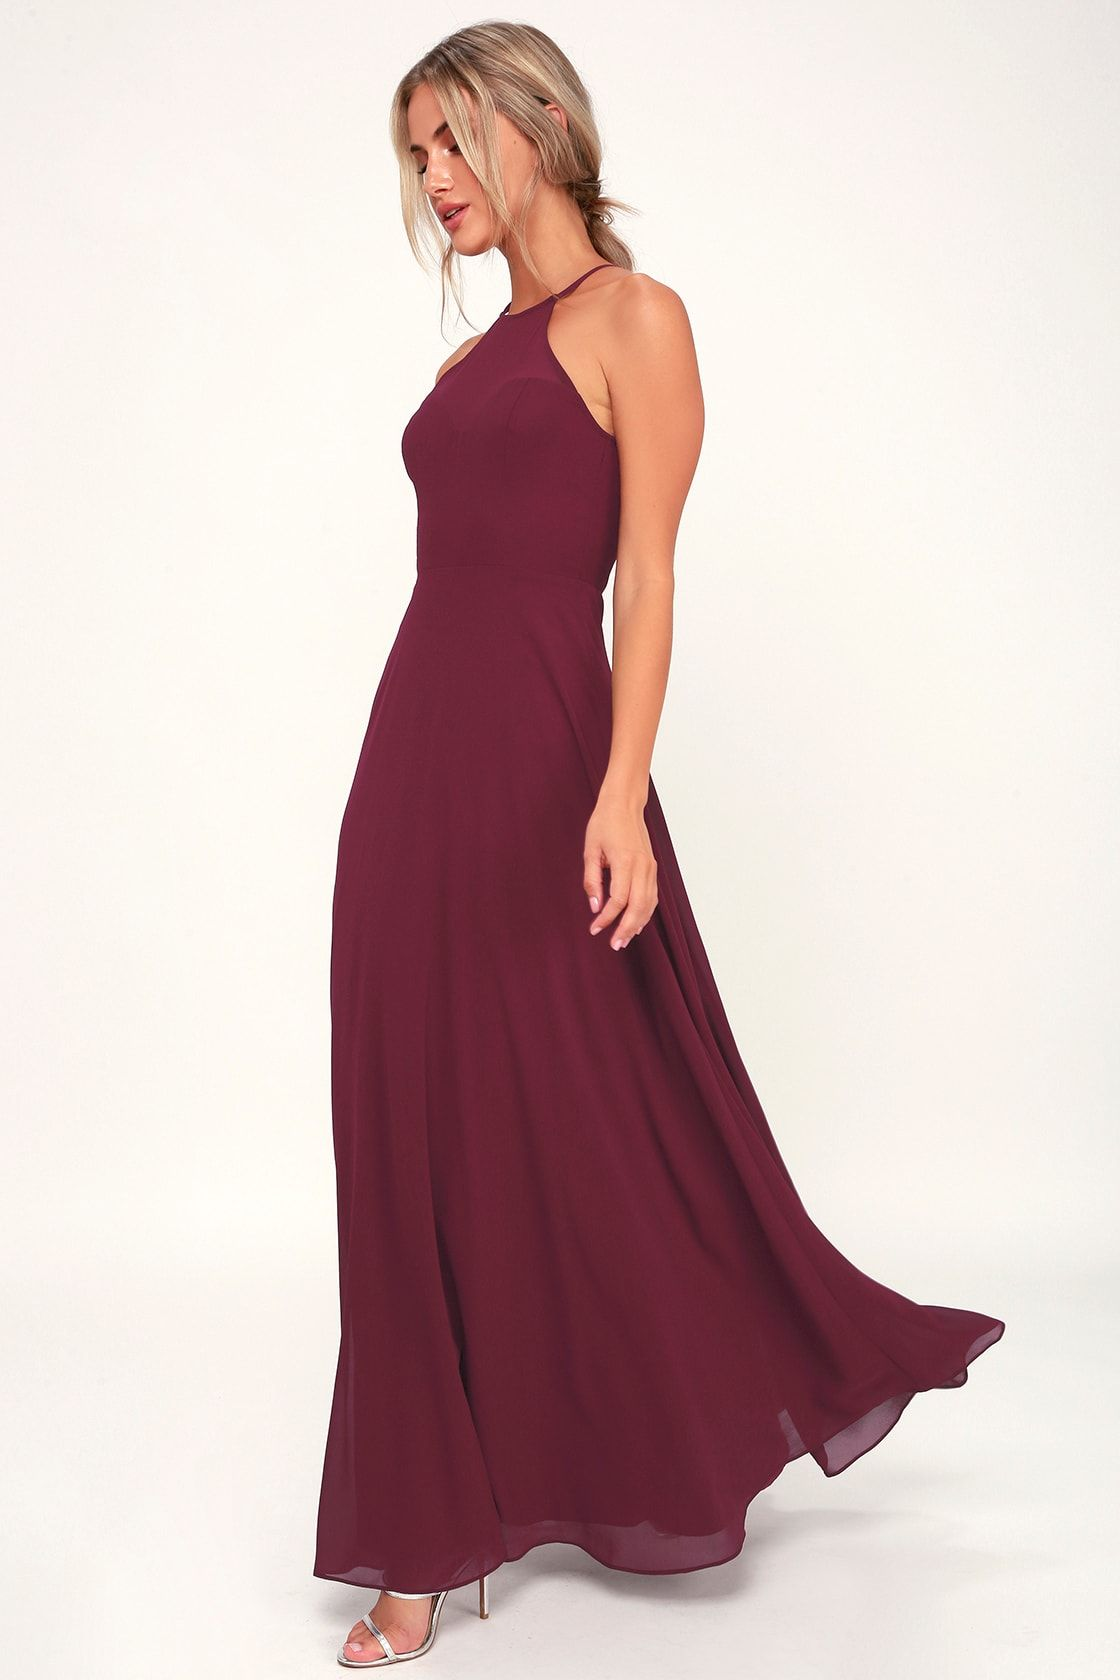 2a95d4e37c Burgundy Bridesmaid Dresses Lulus